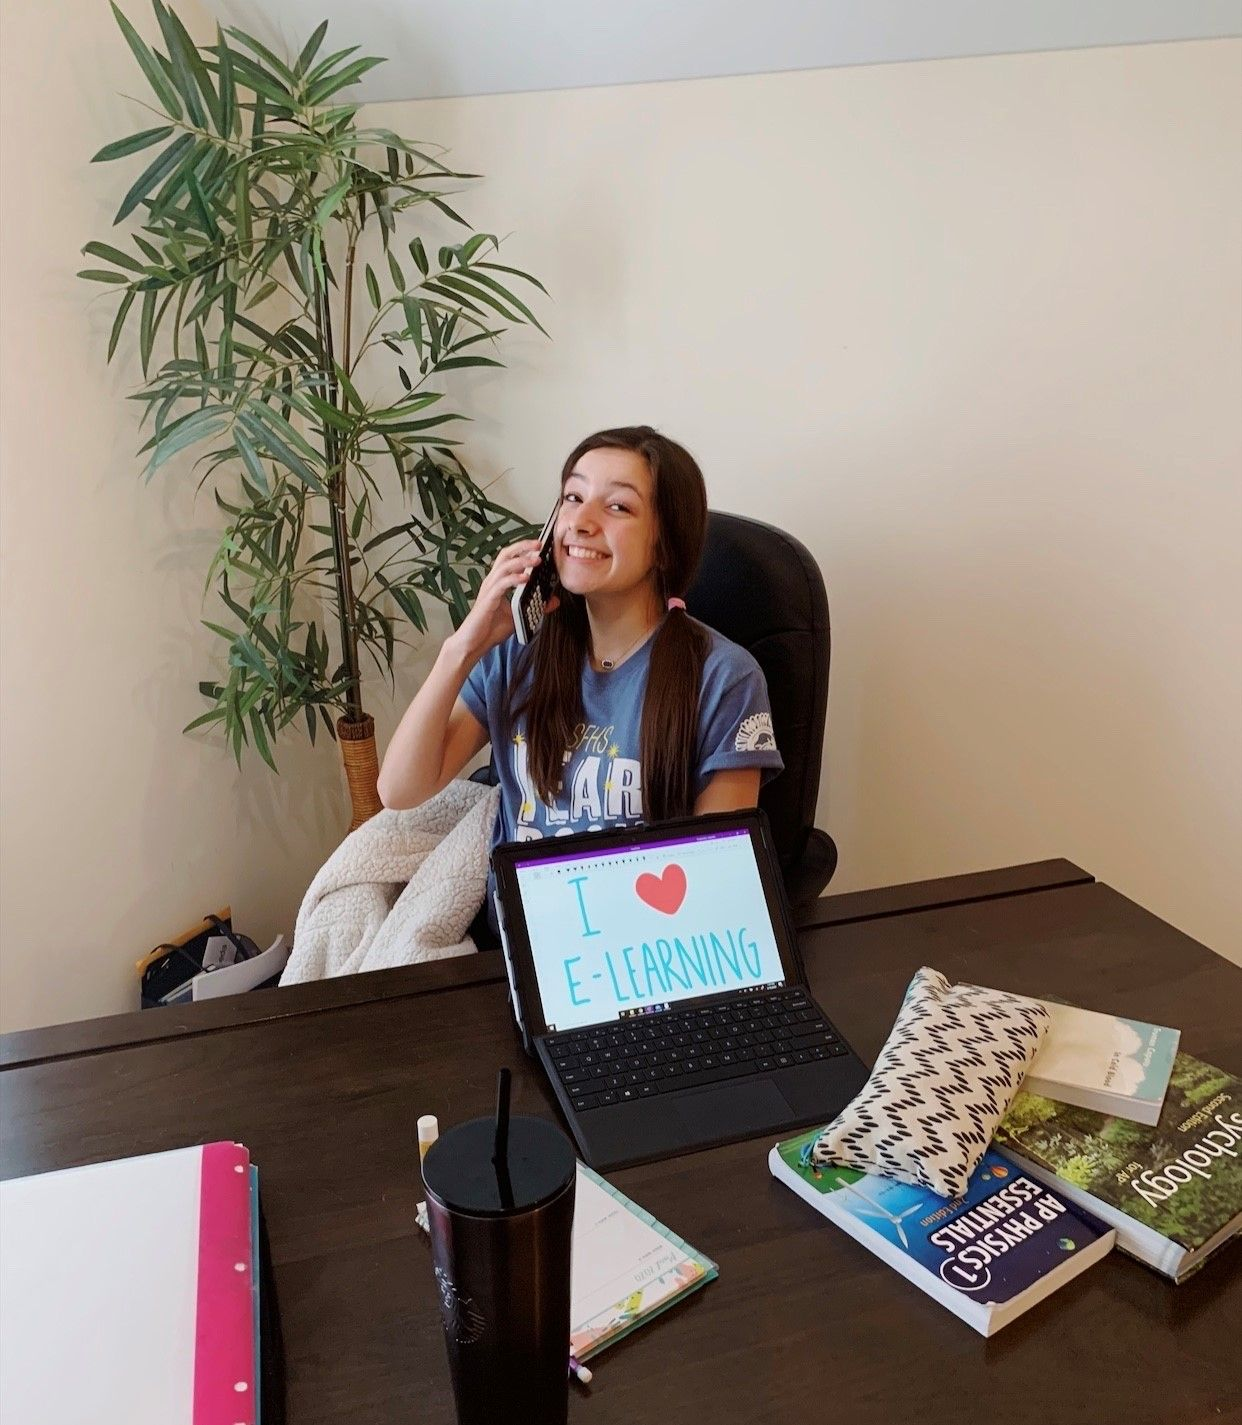 Student  pretending to talk on the phone. Computer has I heart E-Learning